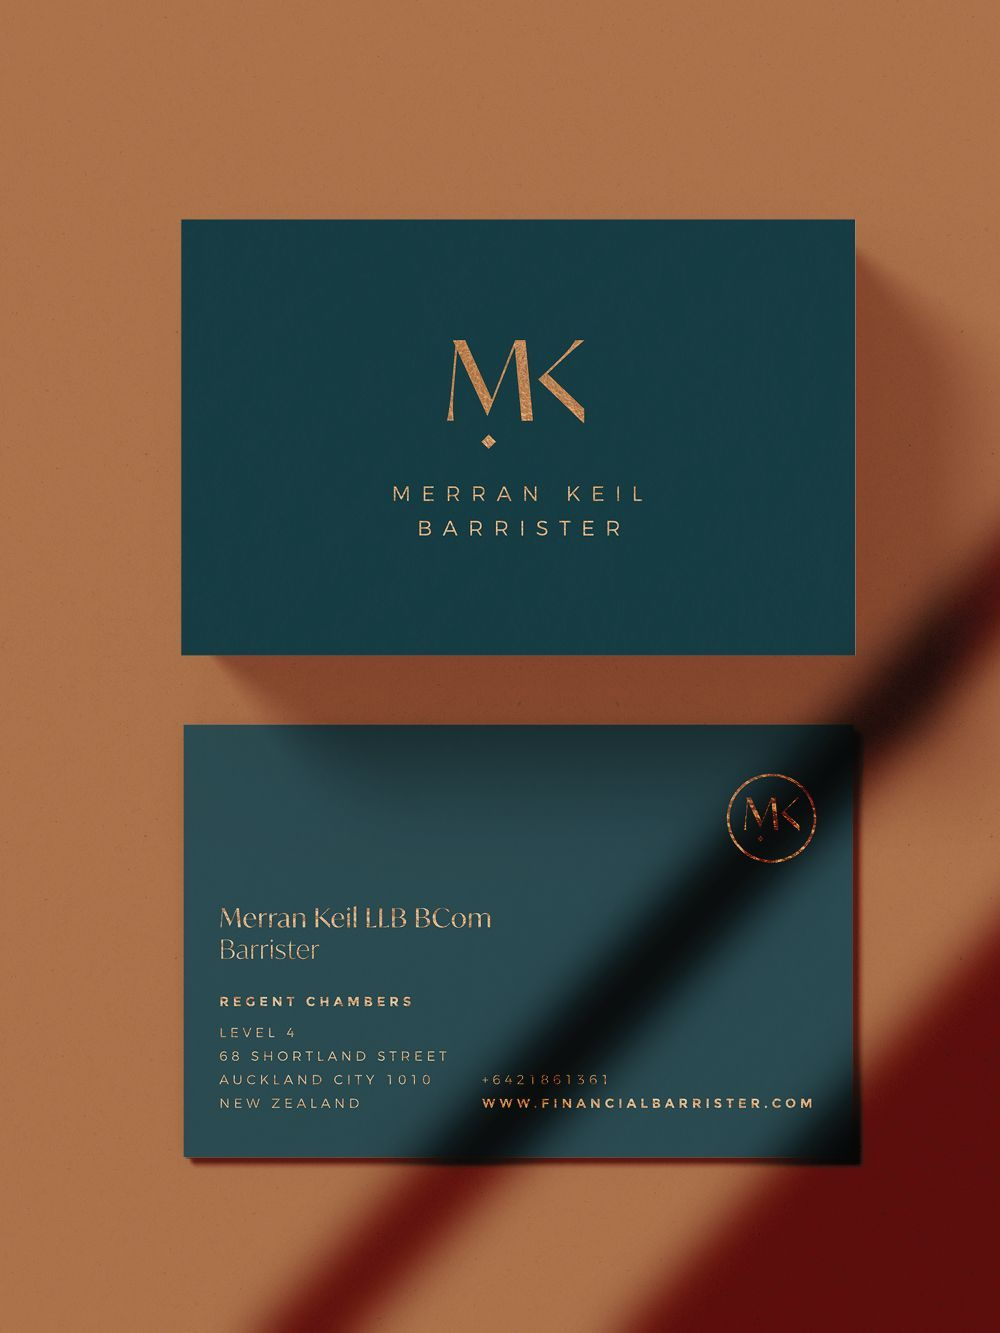 Copper Foil Business Cards In 2021 Professional Business Card Design Graphic Design Business Card Business Card Design Simple